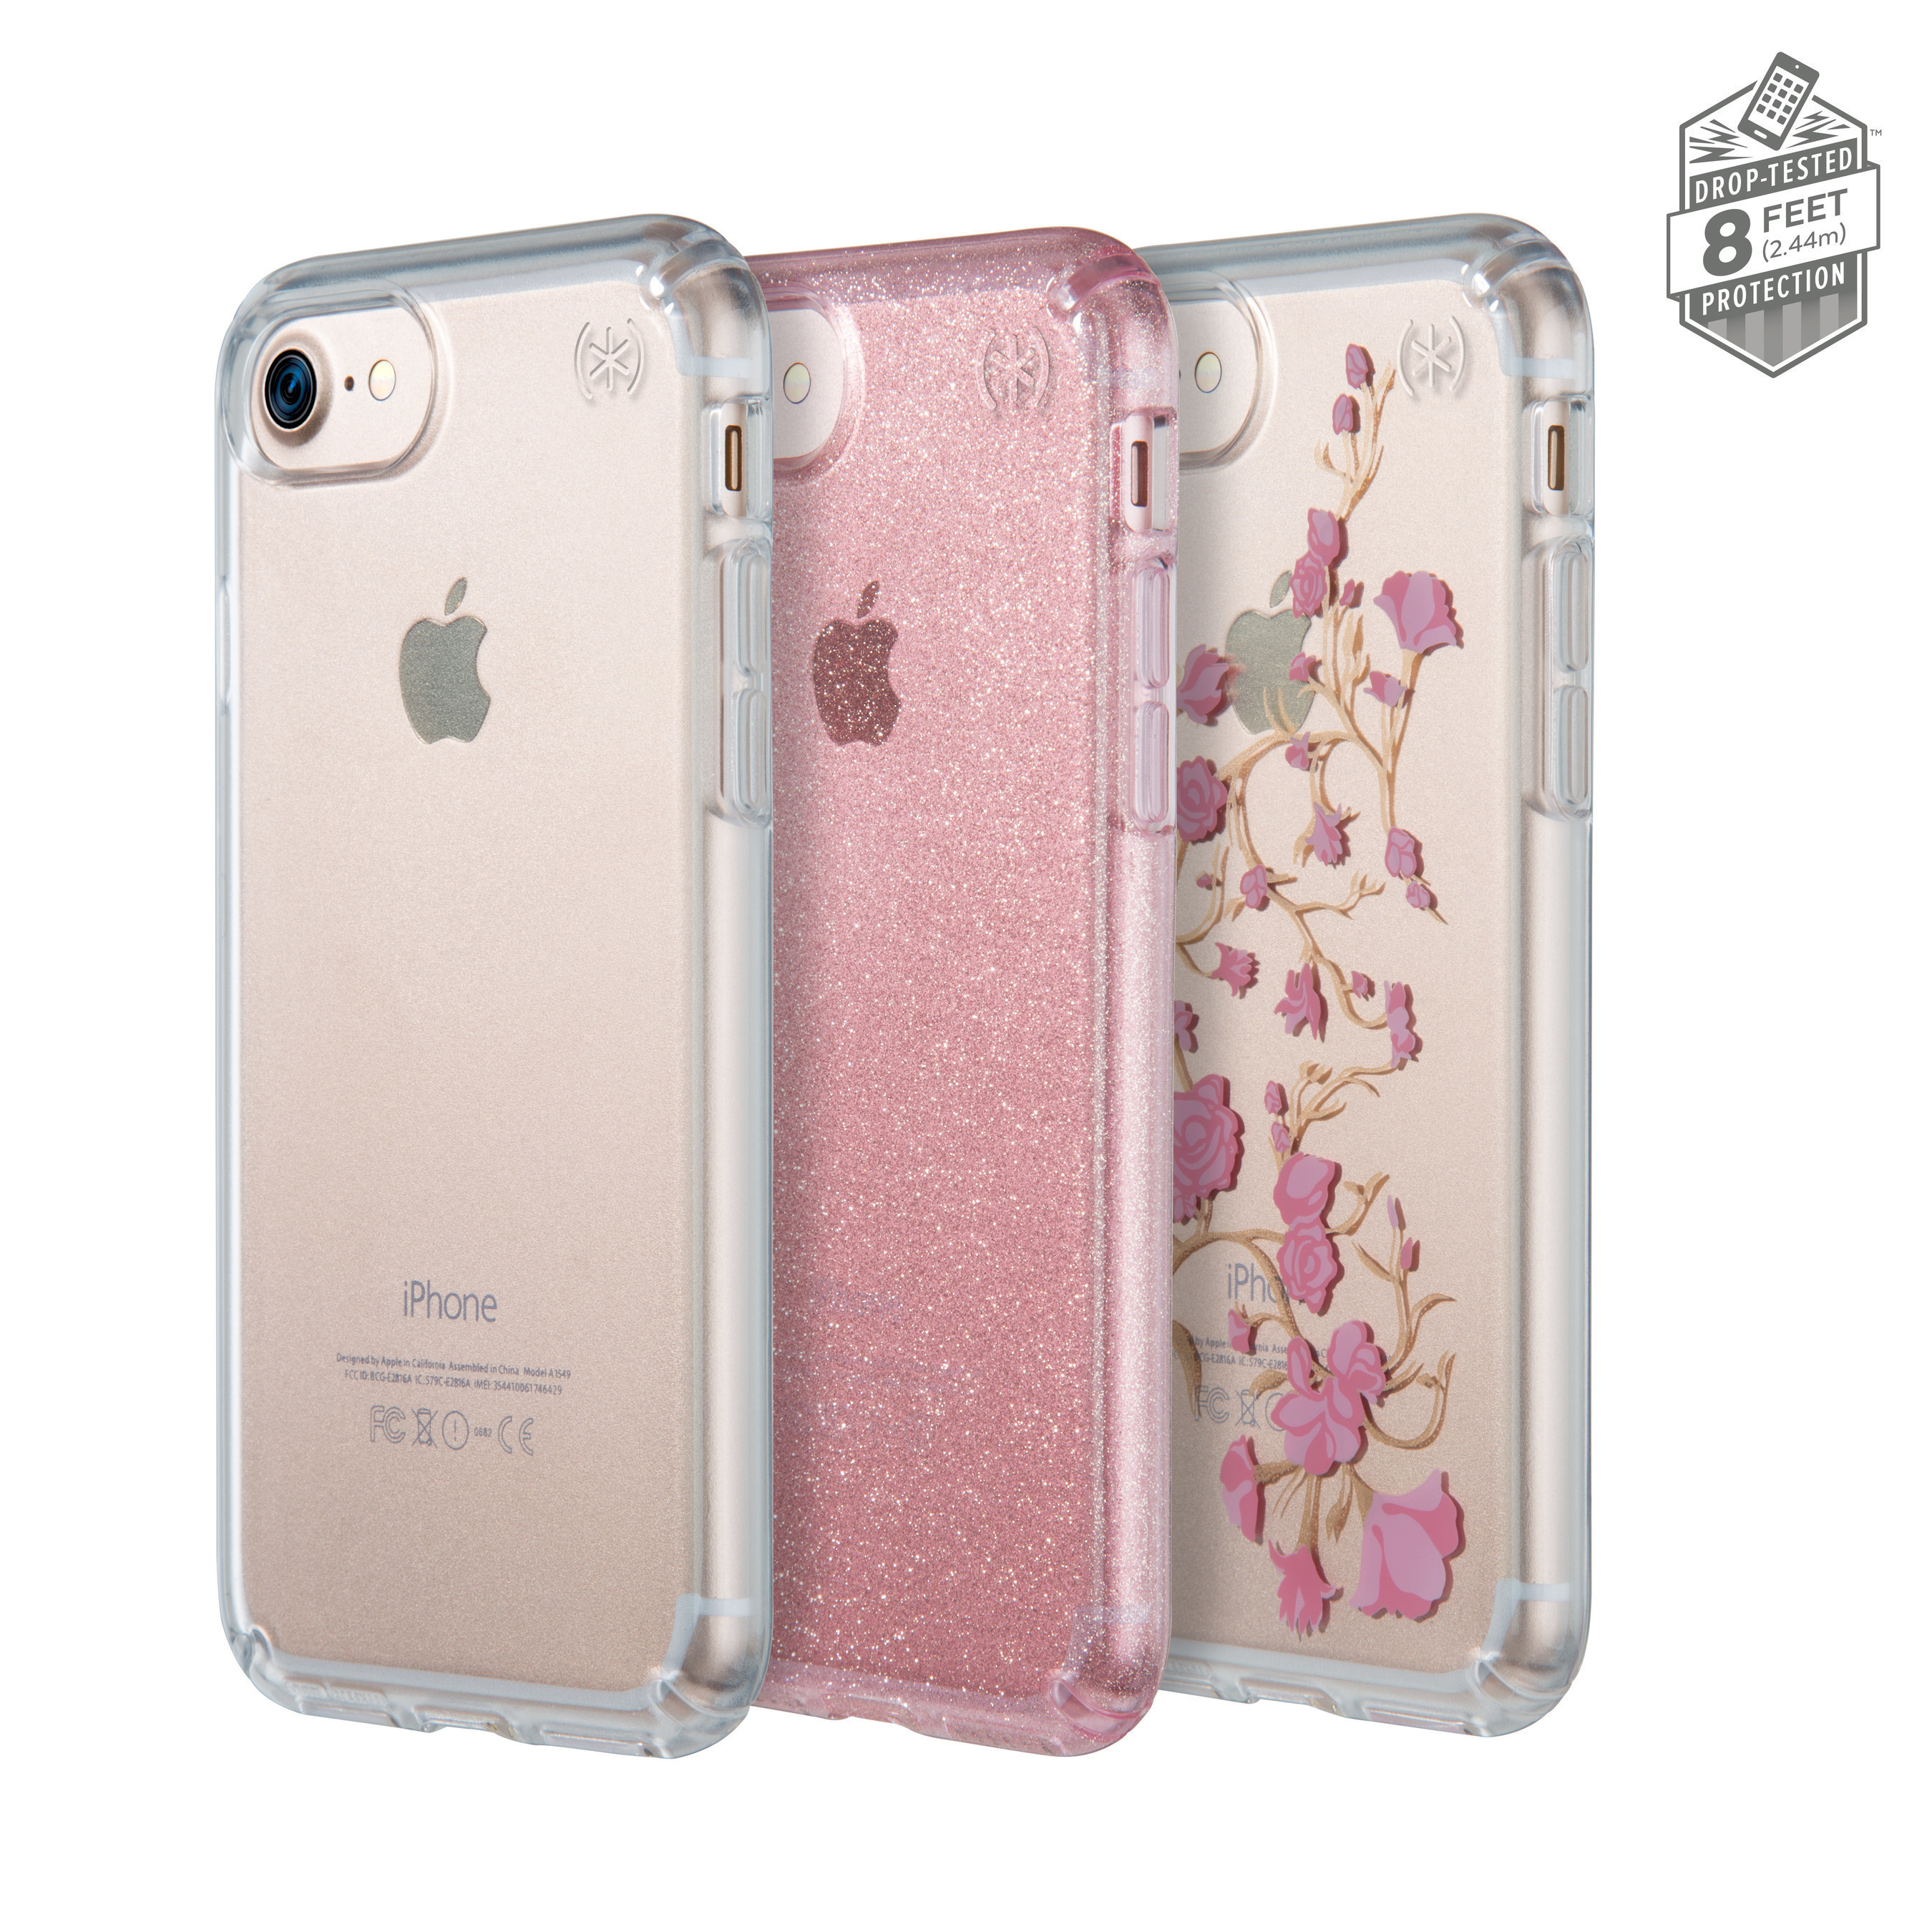 7f34d8722b26 New Speck Presidio iPhone Cases Built To Protect Against 10 Foot Drops